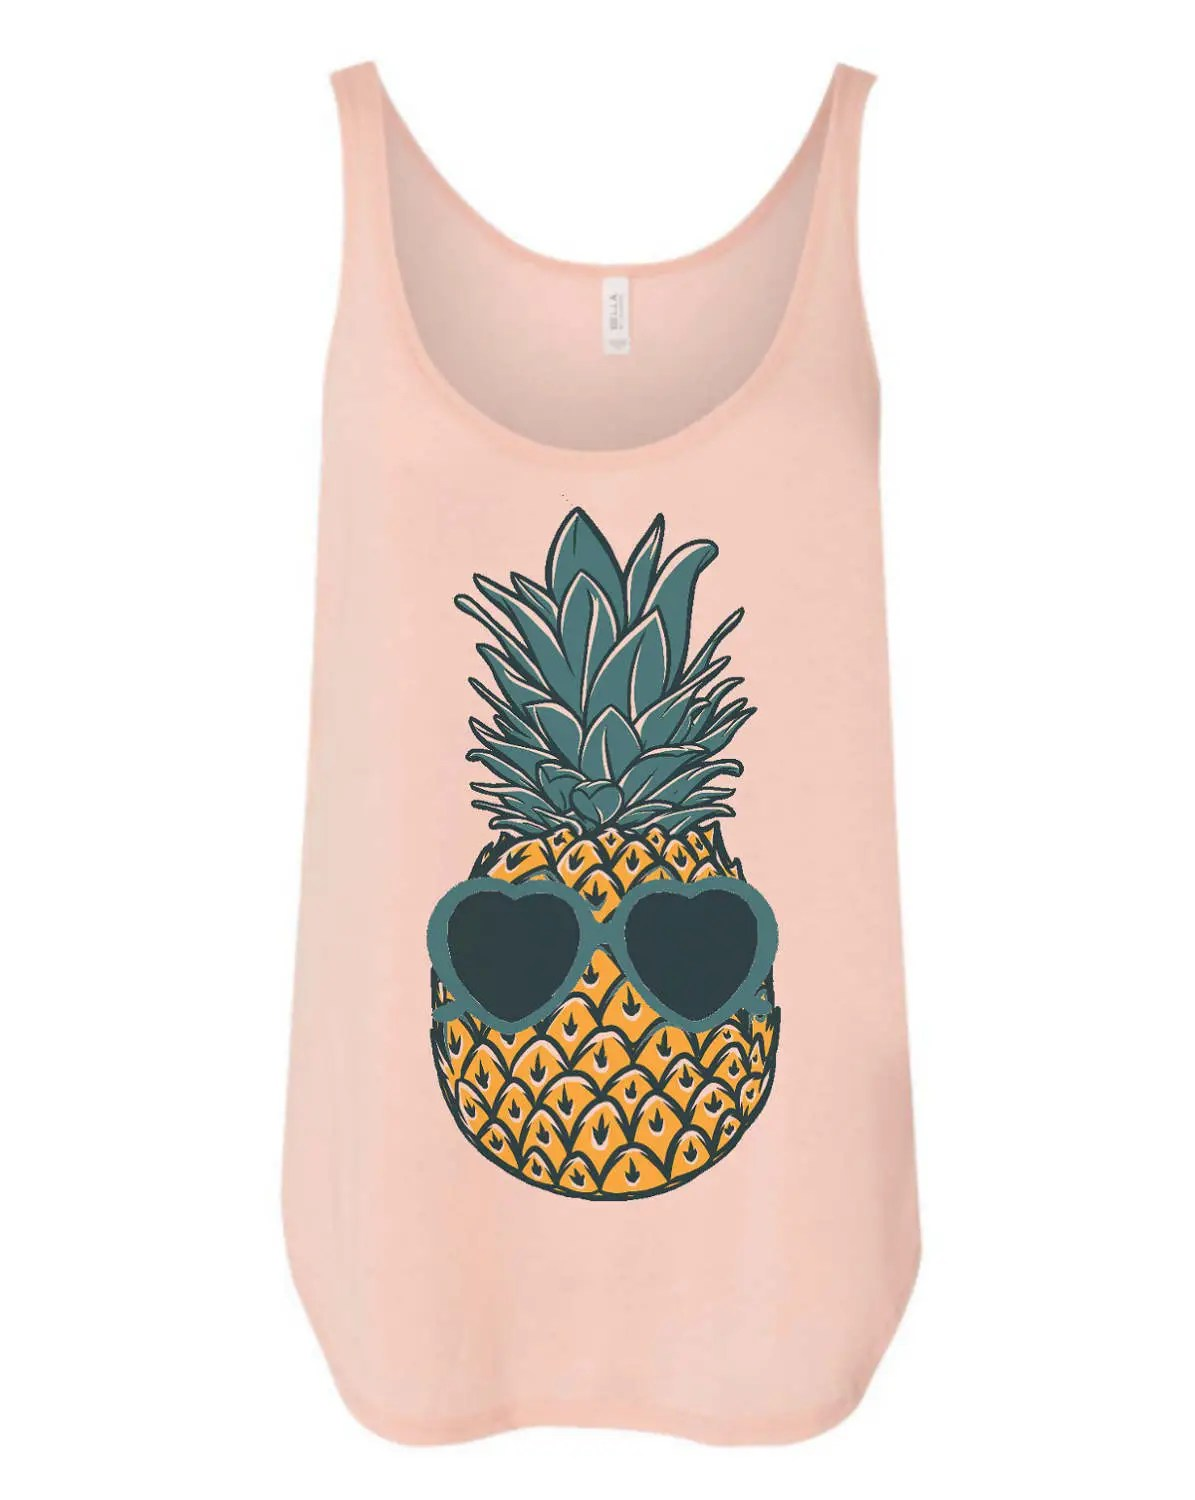 Pineapple With Sunglasses Tumblr Womens Boho Pineapple Shirt Pineapple Sunglasses Trendy